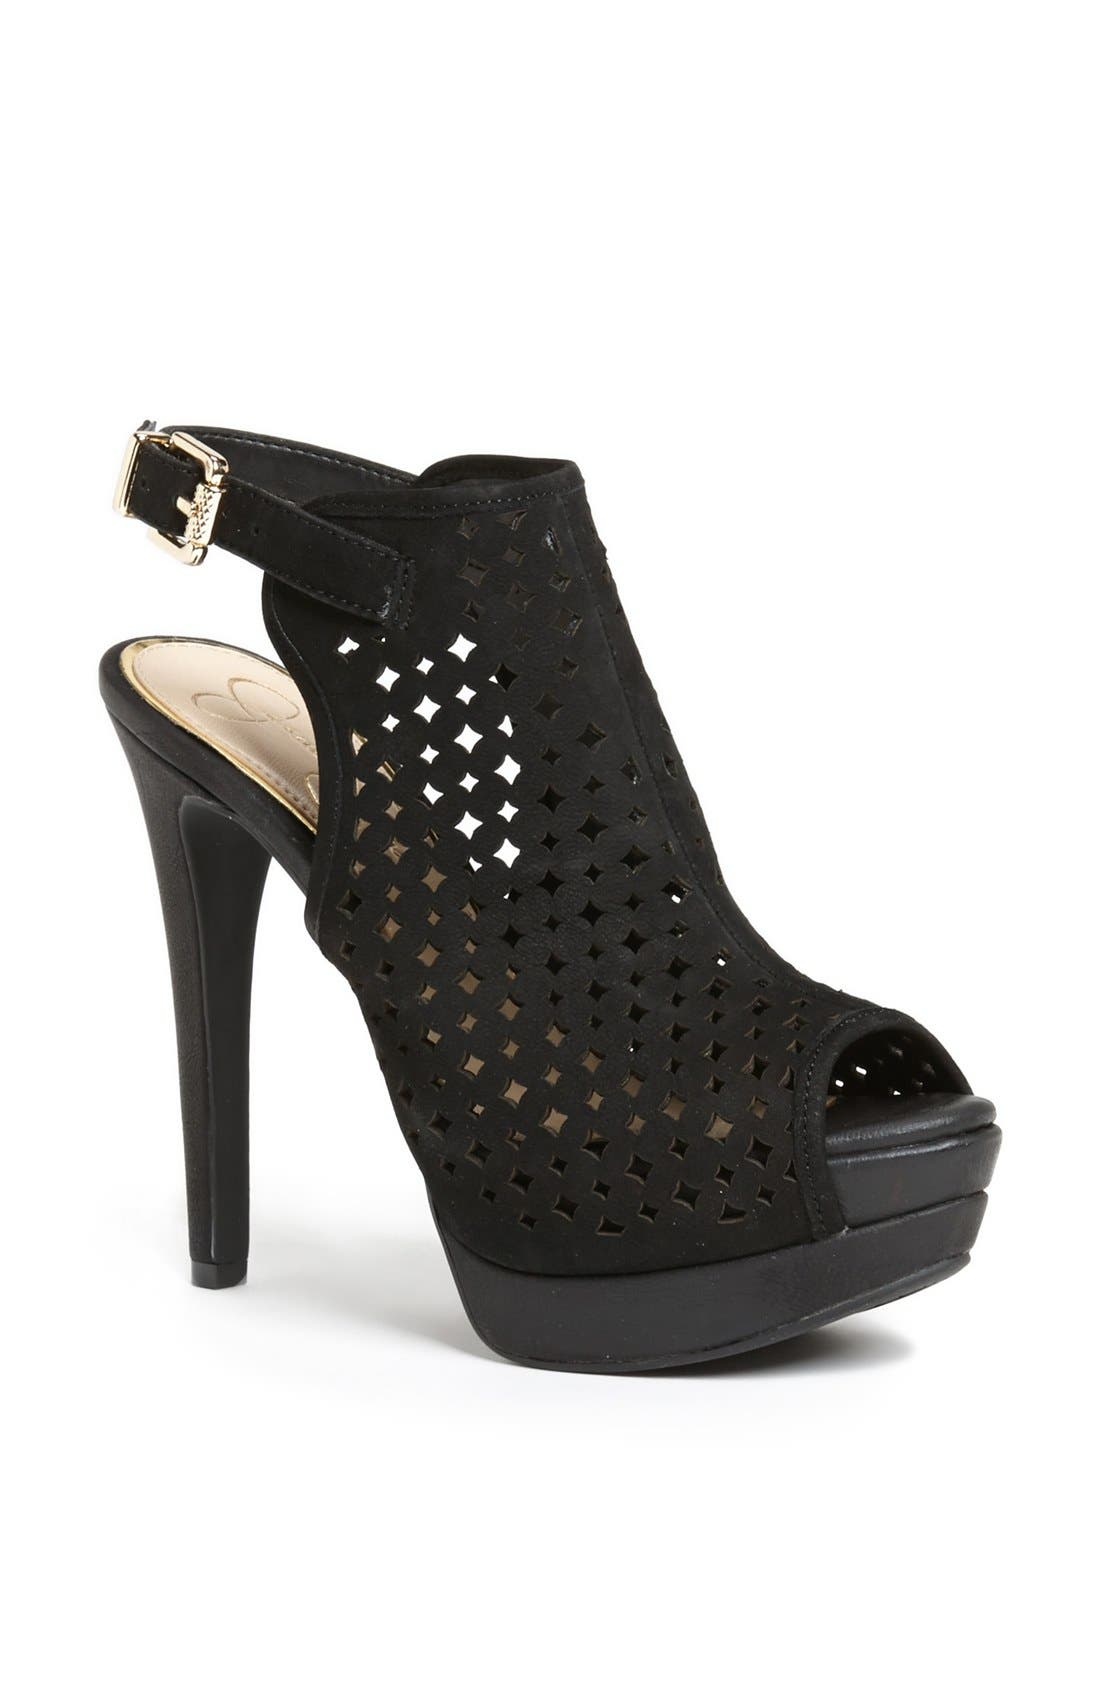 Alternate Image 1 Selected - Jessica Simpson 'Seigfried' Slingback Platform Sandal